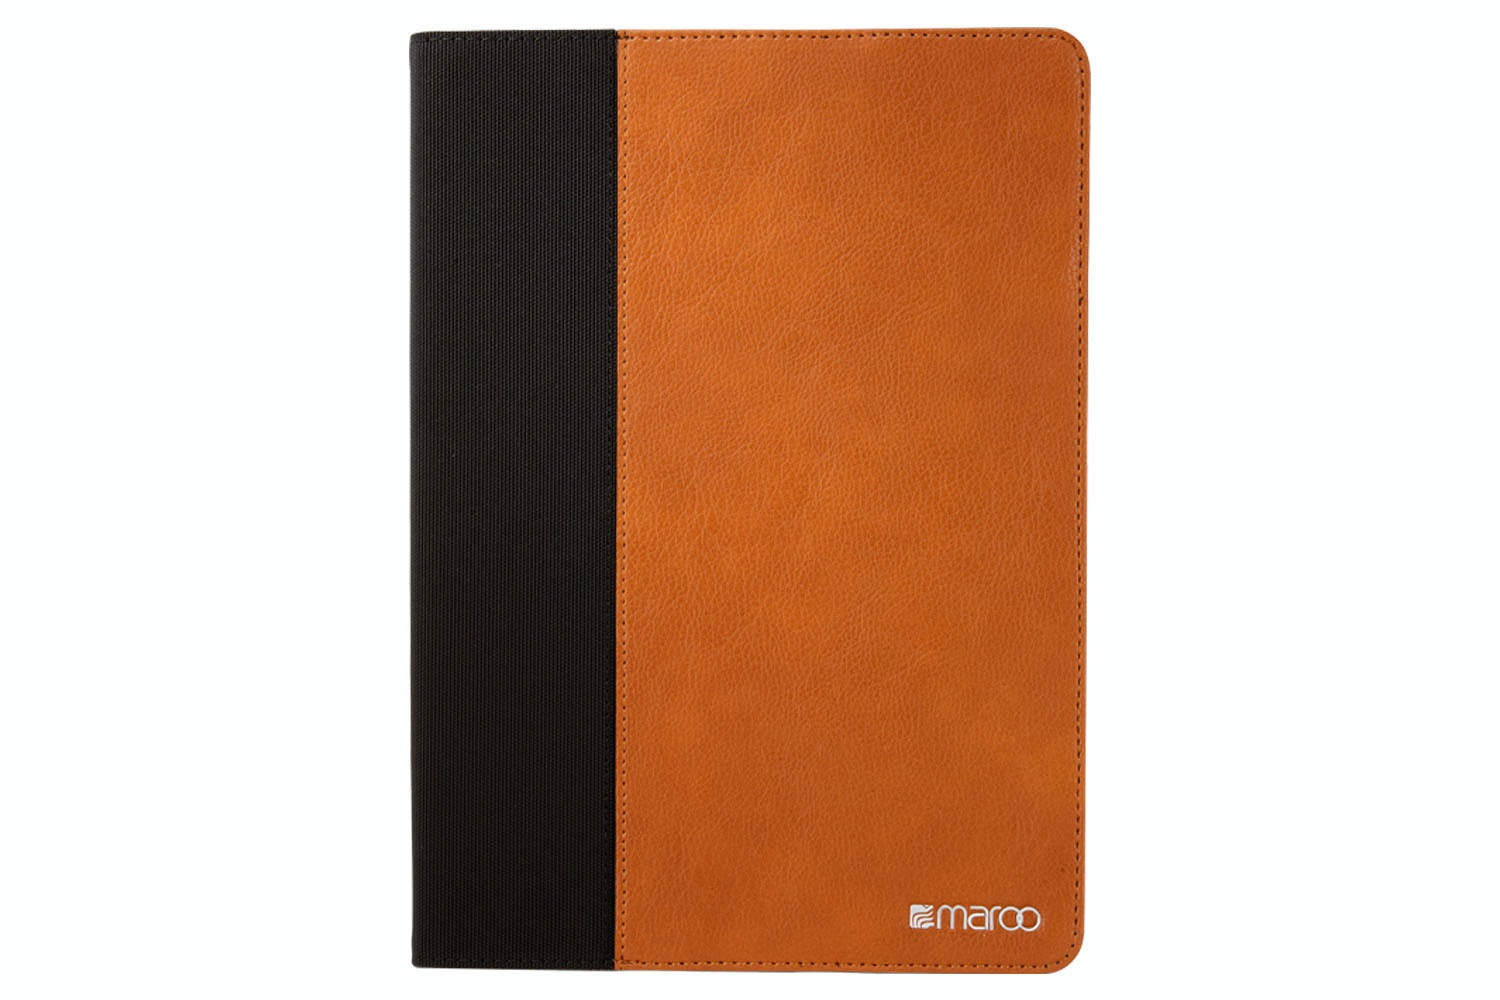 Maroo Executive Folio iPad Air 2 Case | Tobacco